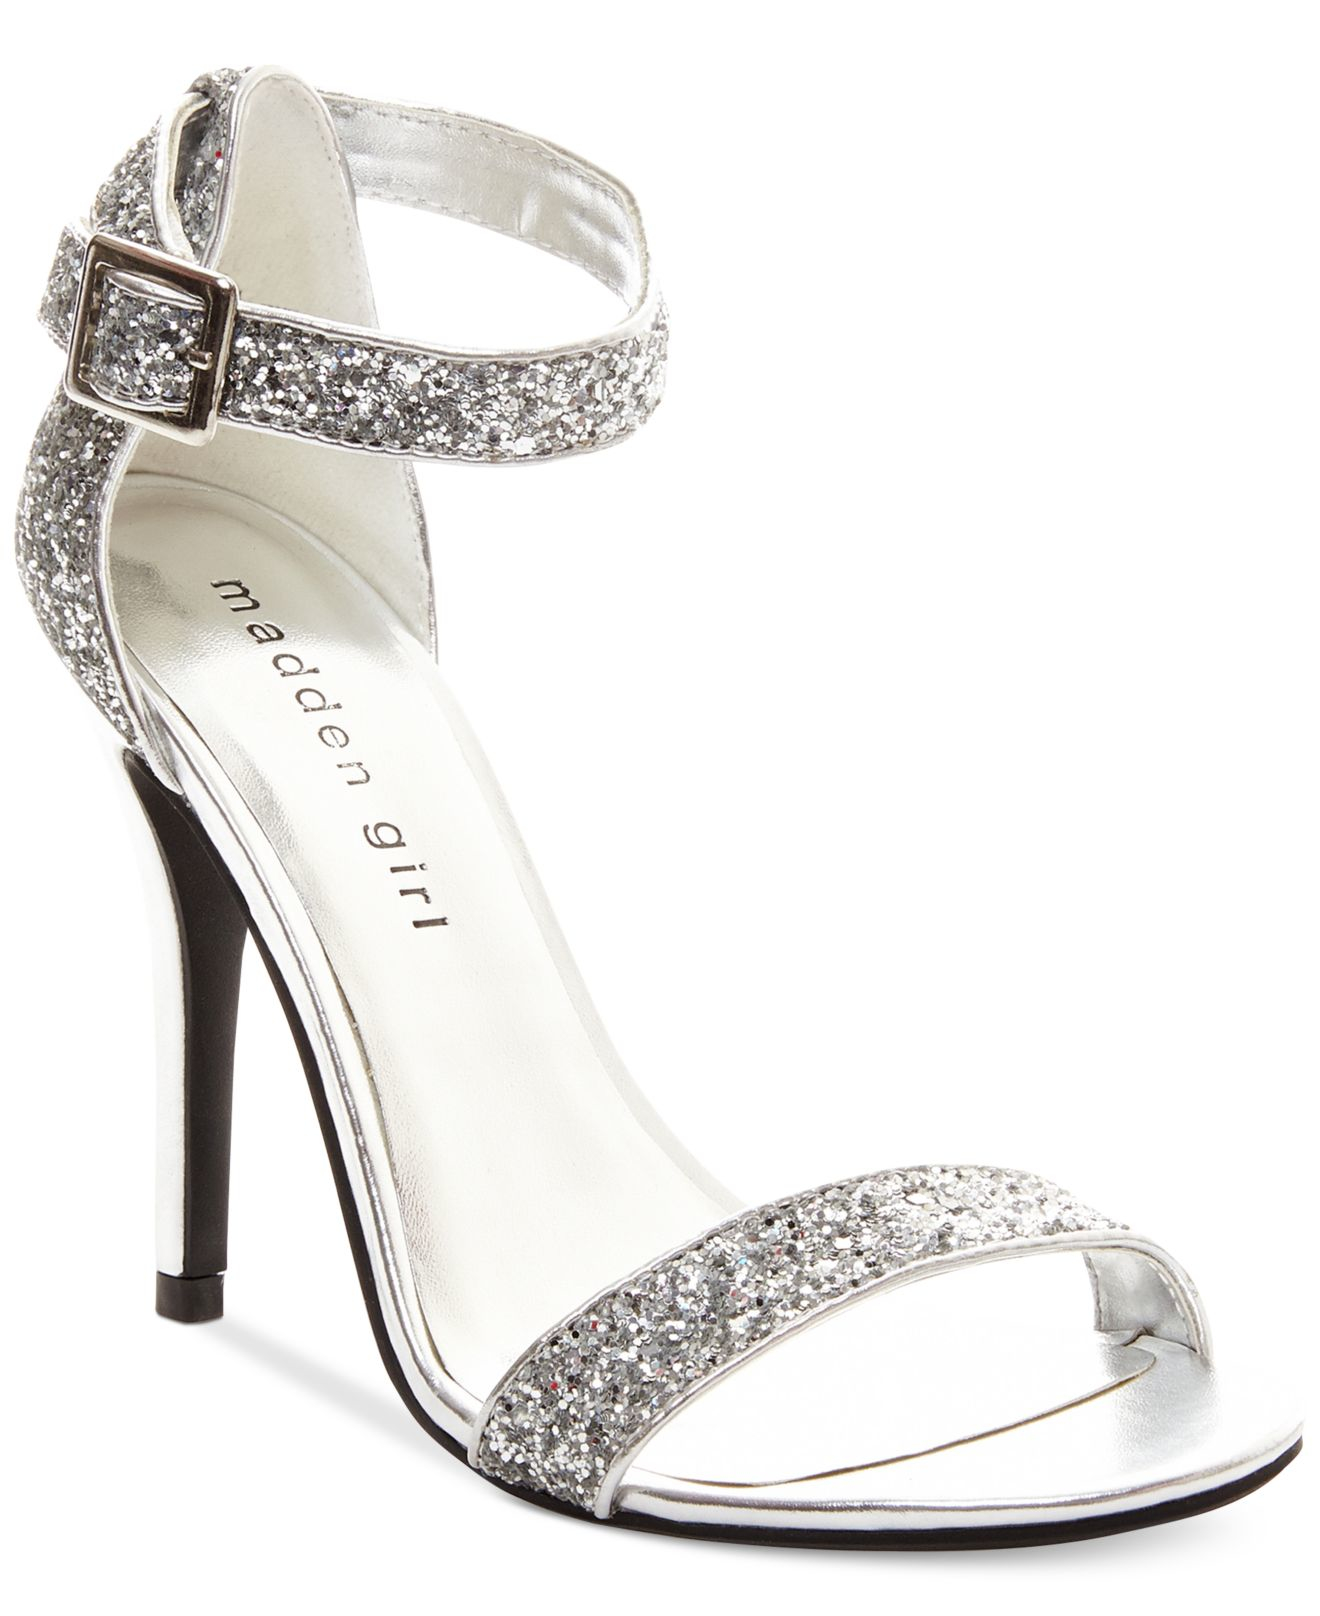 Lyst - Madden Girl Dafney Evening Sandals in Metallic